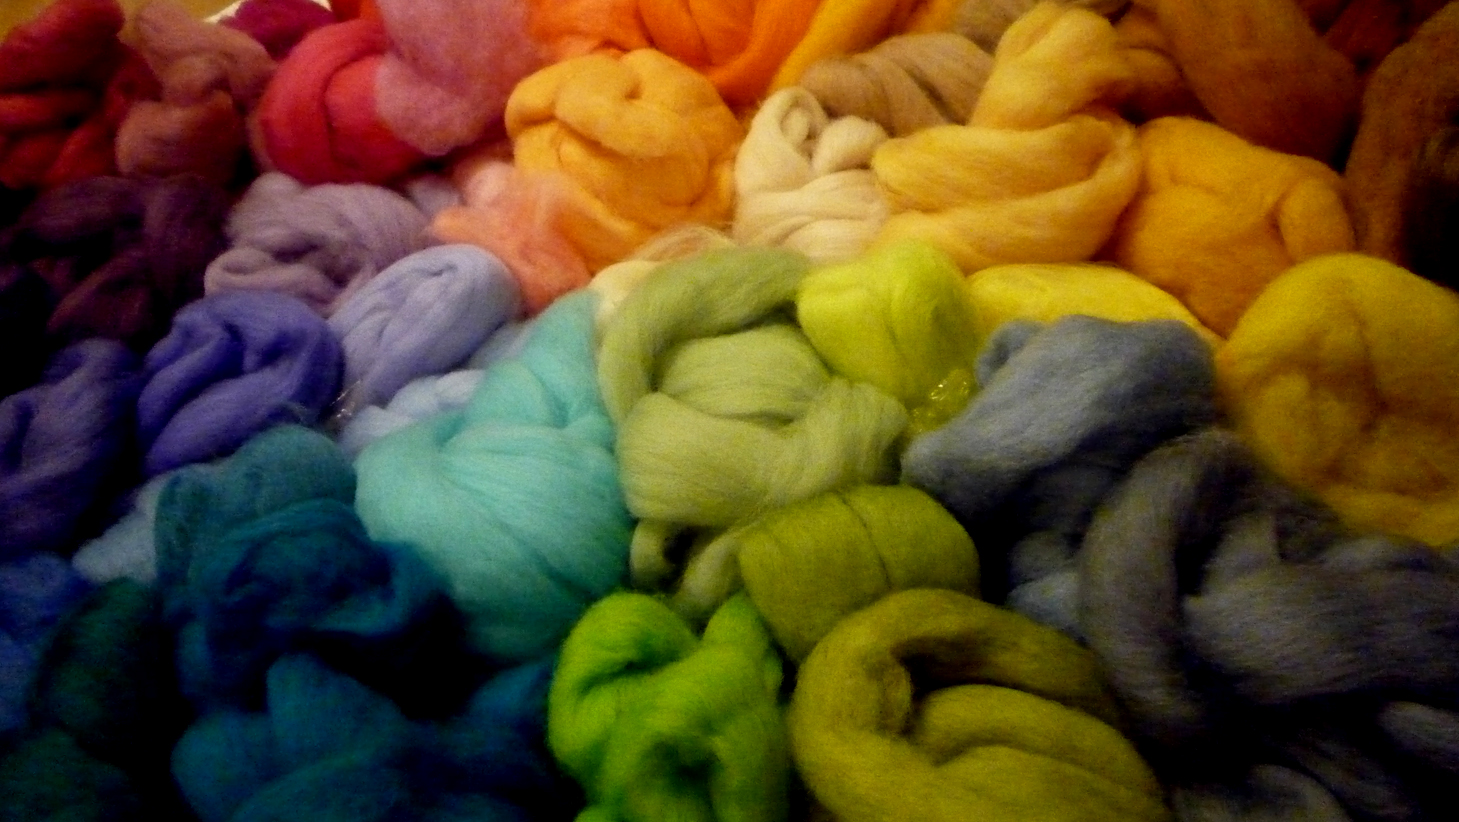 My wool collection! Isn't it nice?